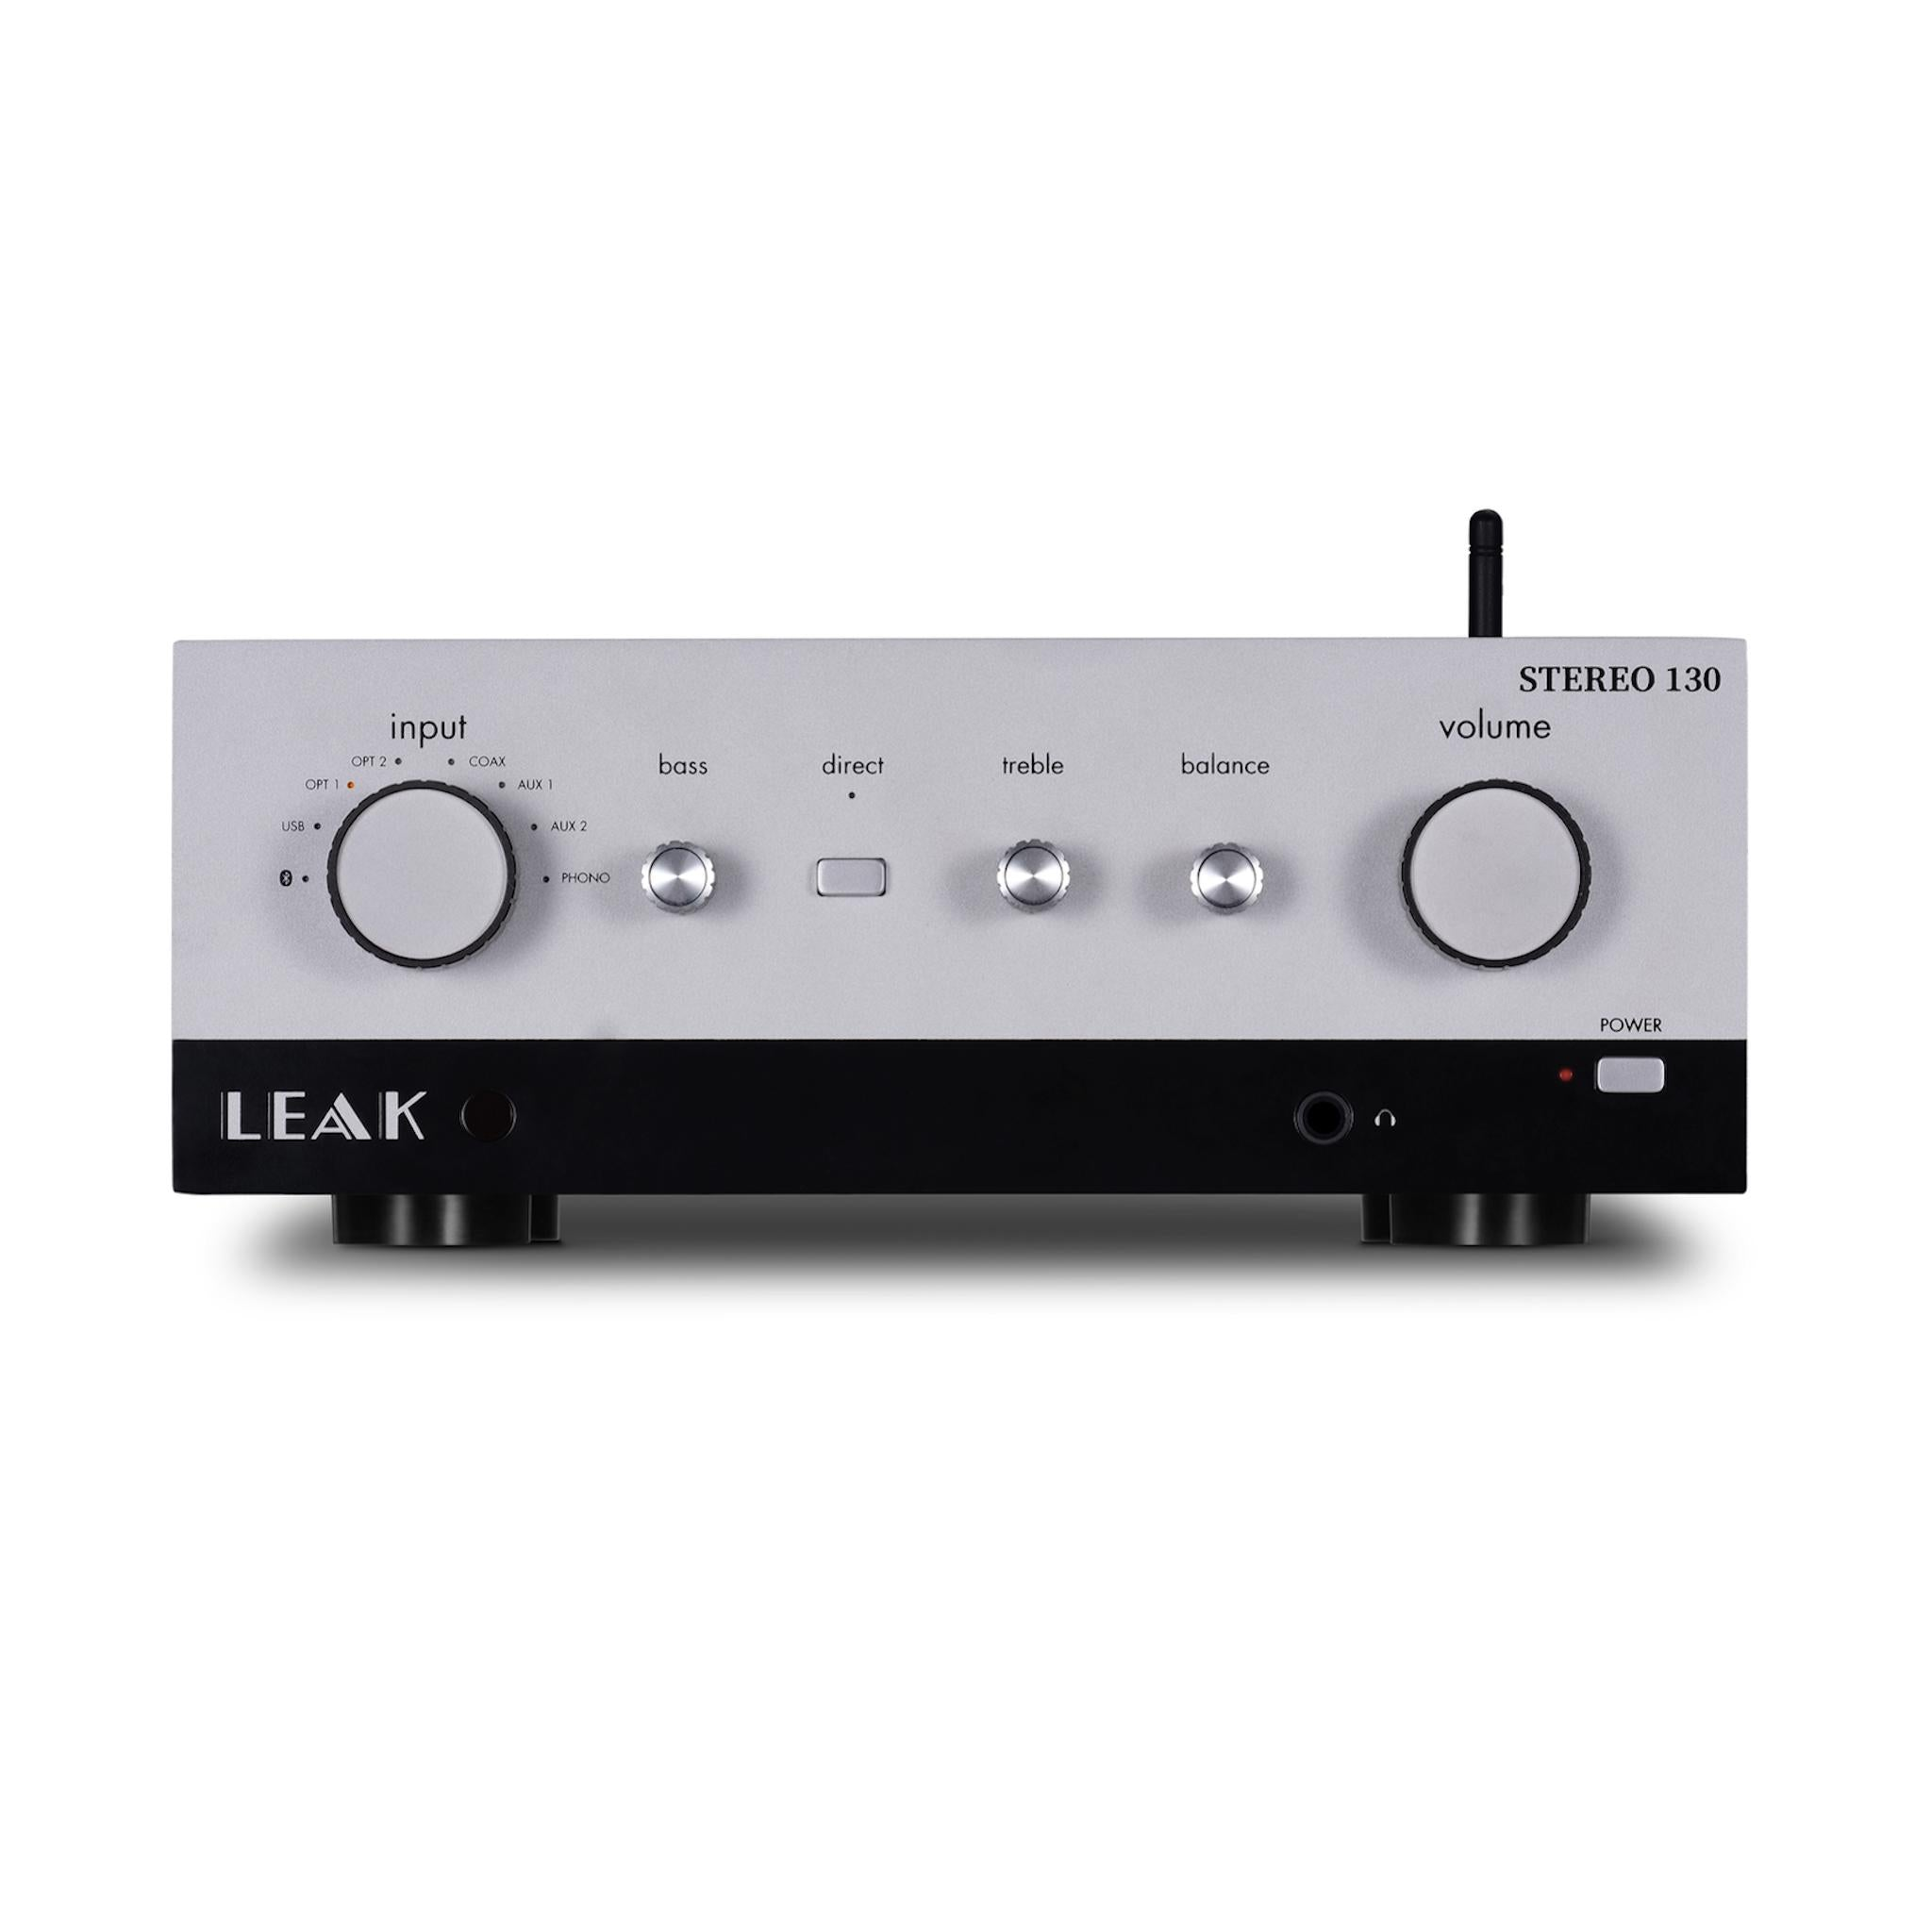 LEAK Audio Stereo 130 - Integrated Stereo Amplifier, LEAK Audio, Integrated Amplifier - AVStore.in